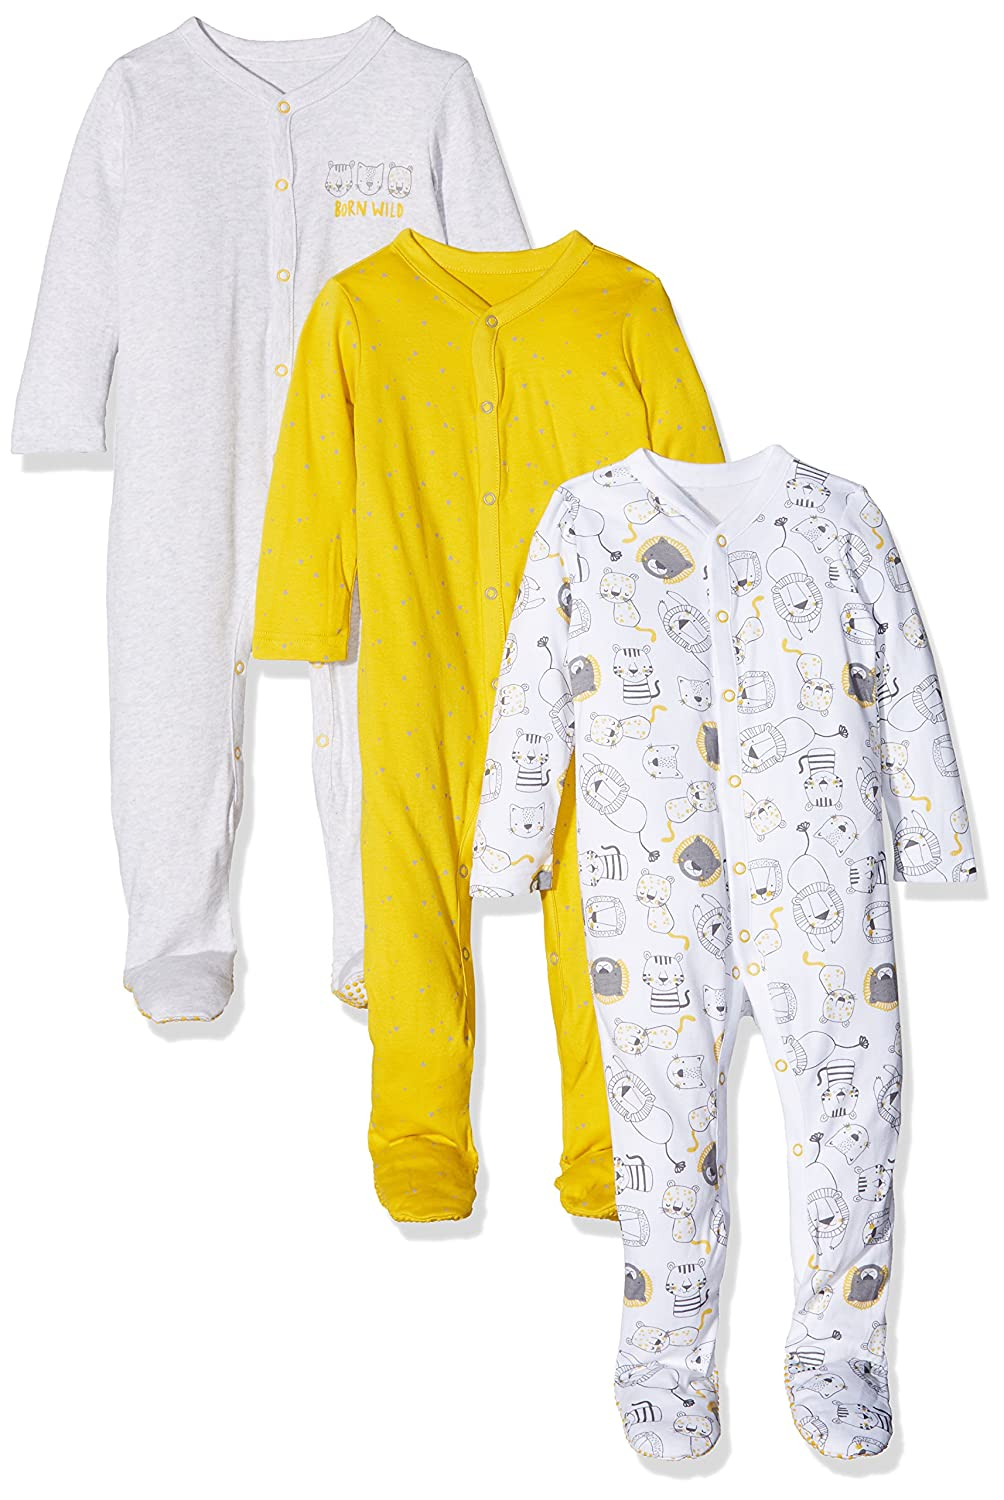 Mothercare Baby Boys Wild One Sleepsuit PD296